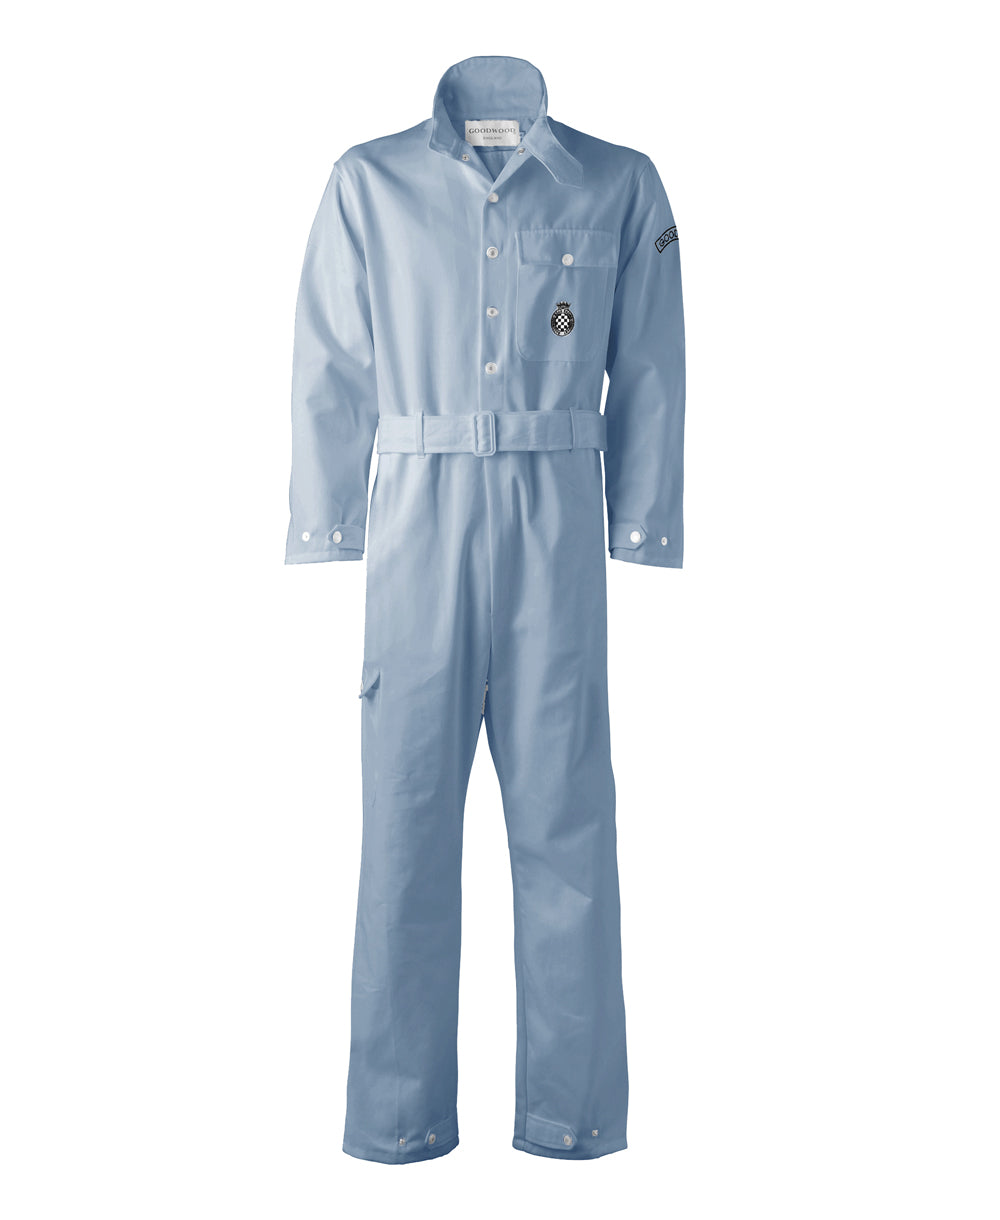 Goodwood Light Blue Cotton Unisex Grrc Overalls